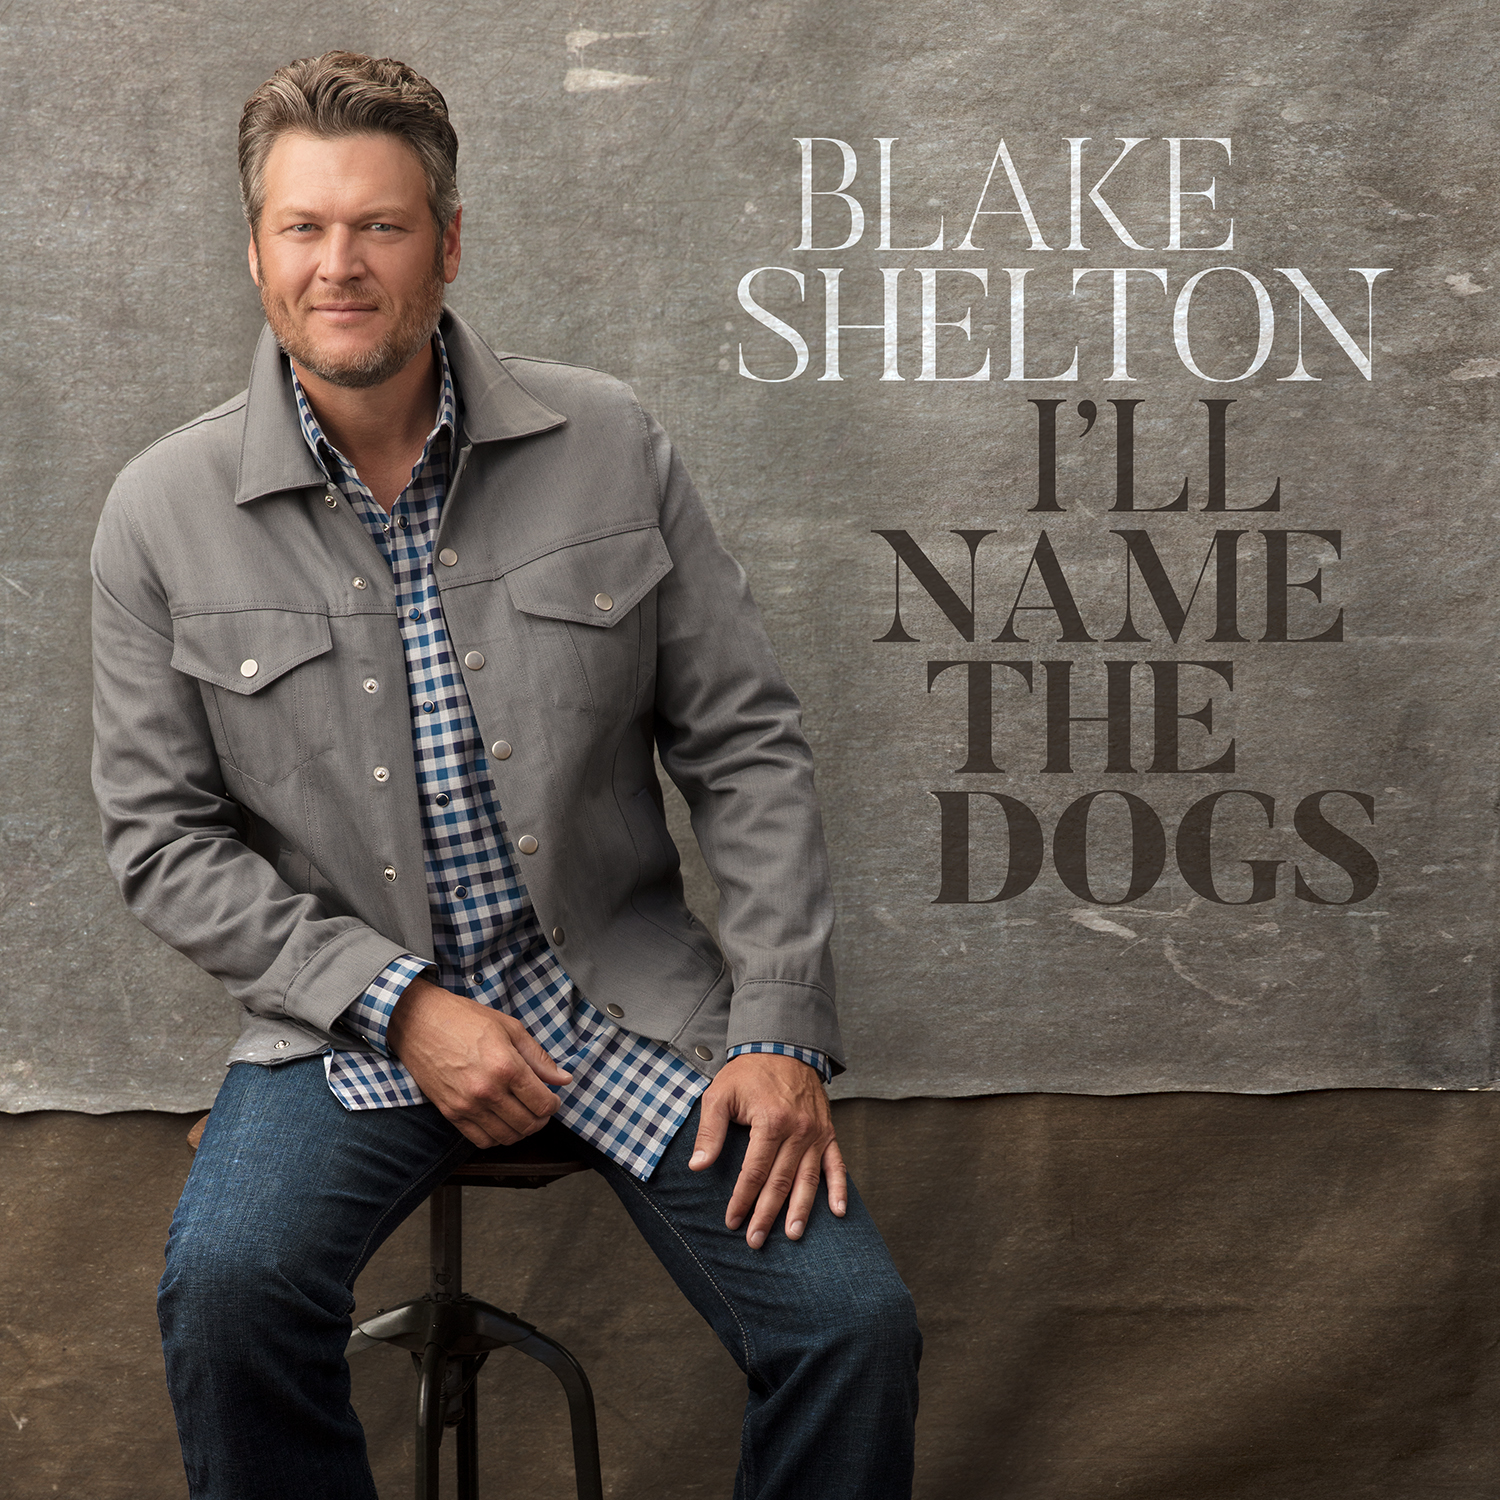 Blake Shelton I Ll Name The Dogs